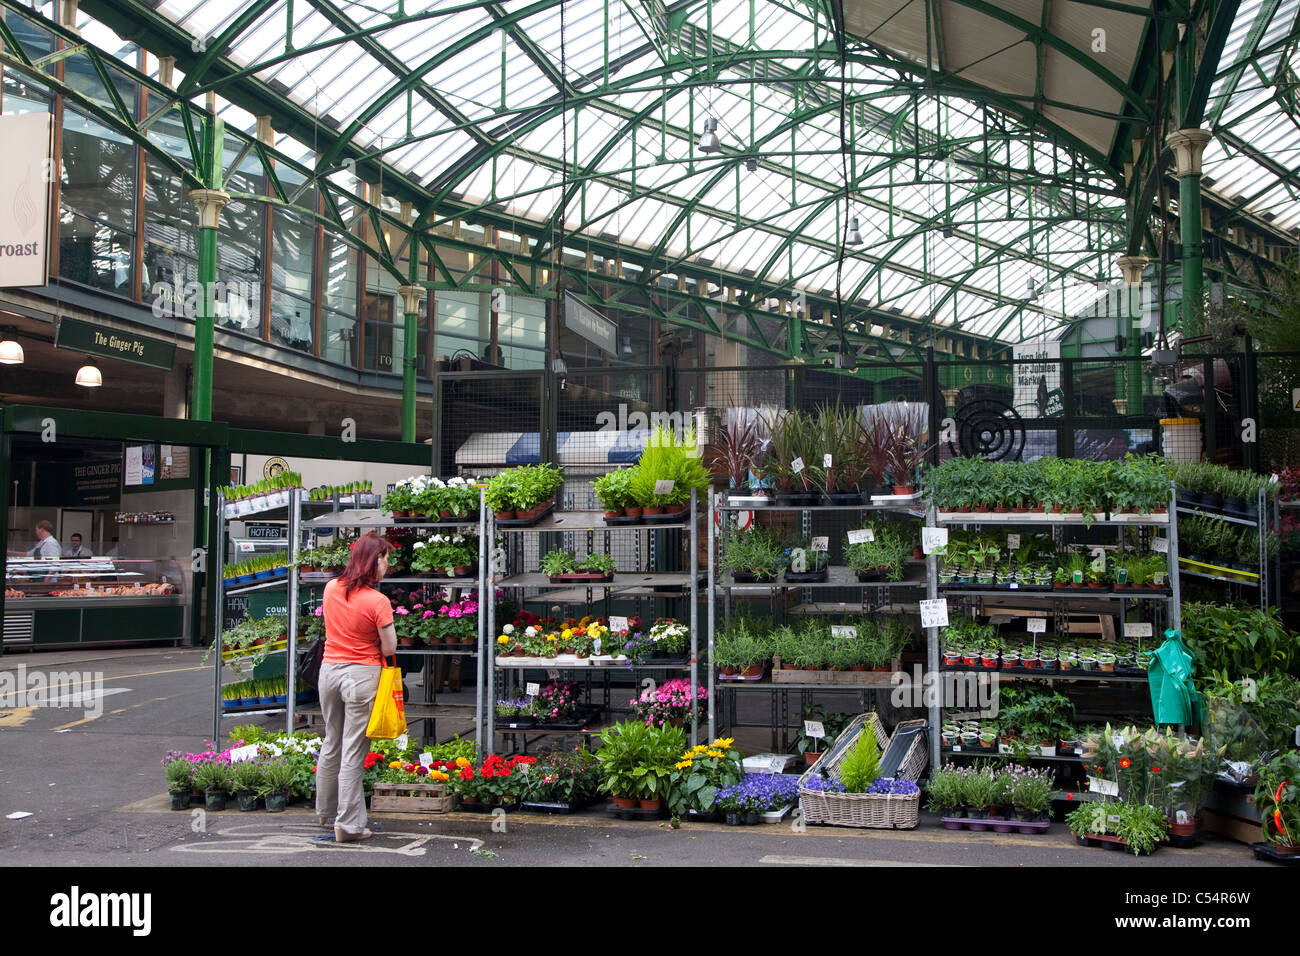 Florist at Borough Market, London, UK - Stock Image